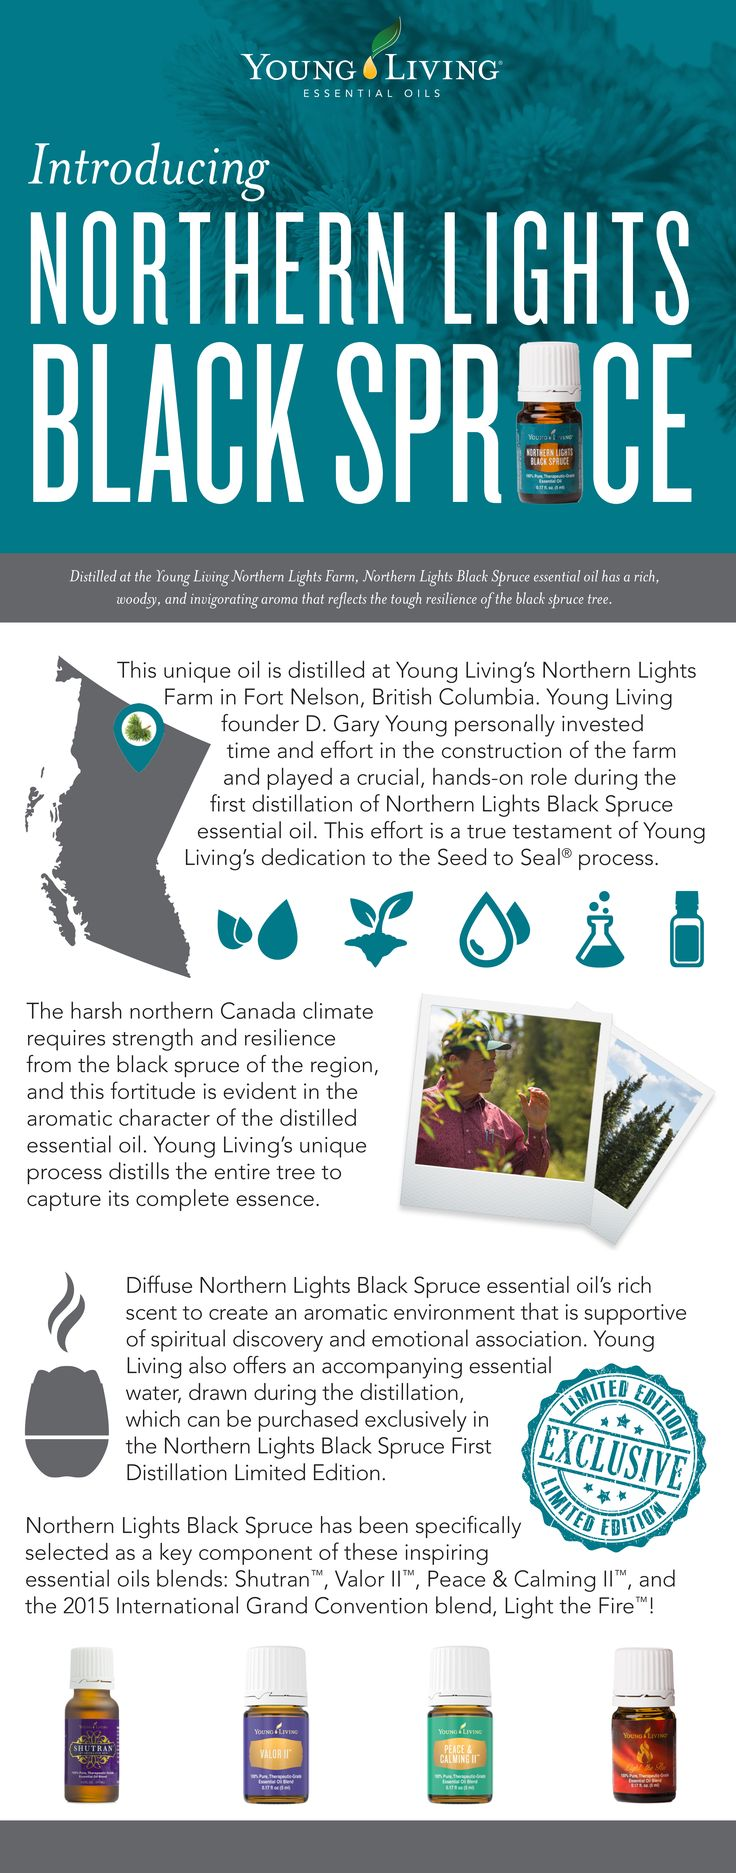 Spiritual Discovery and Emotional Oil Northern Lights Black Spruce is perfect for the diffuser during Yoga or Prayer